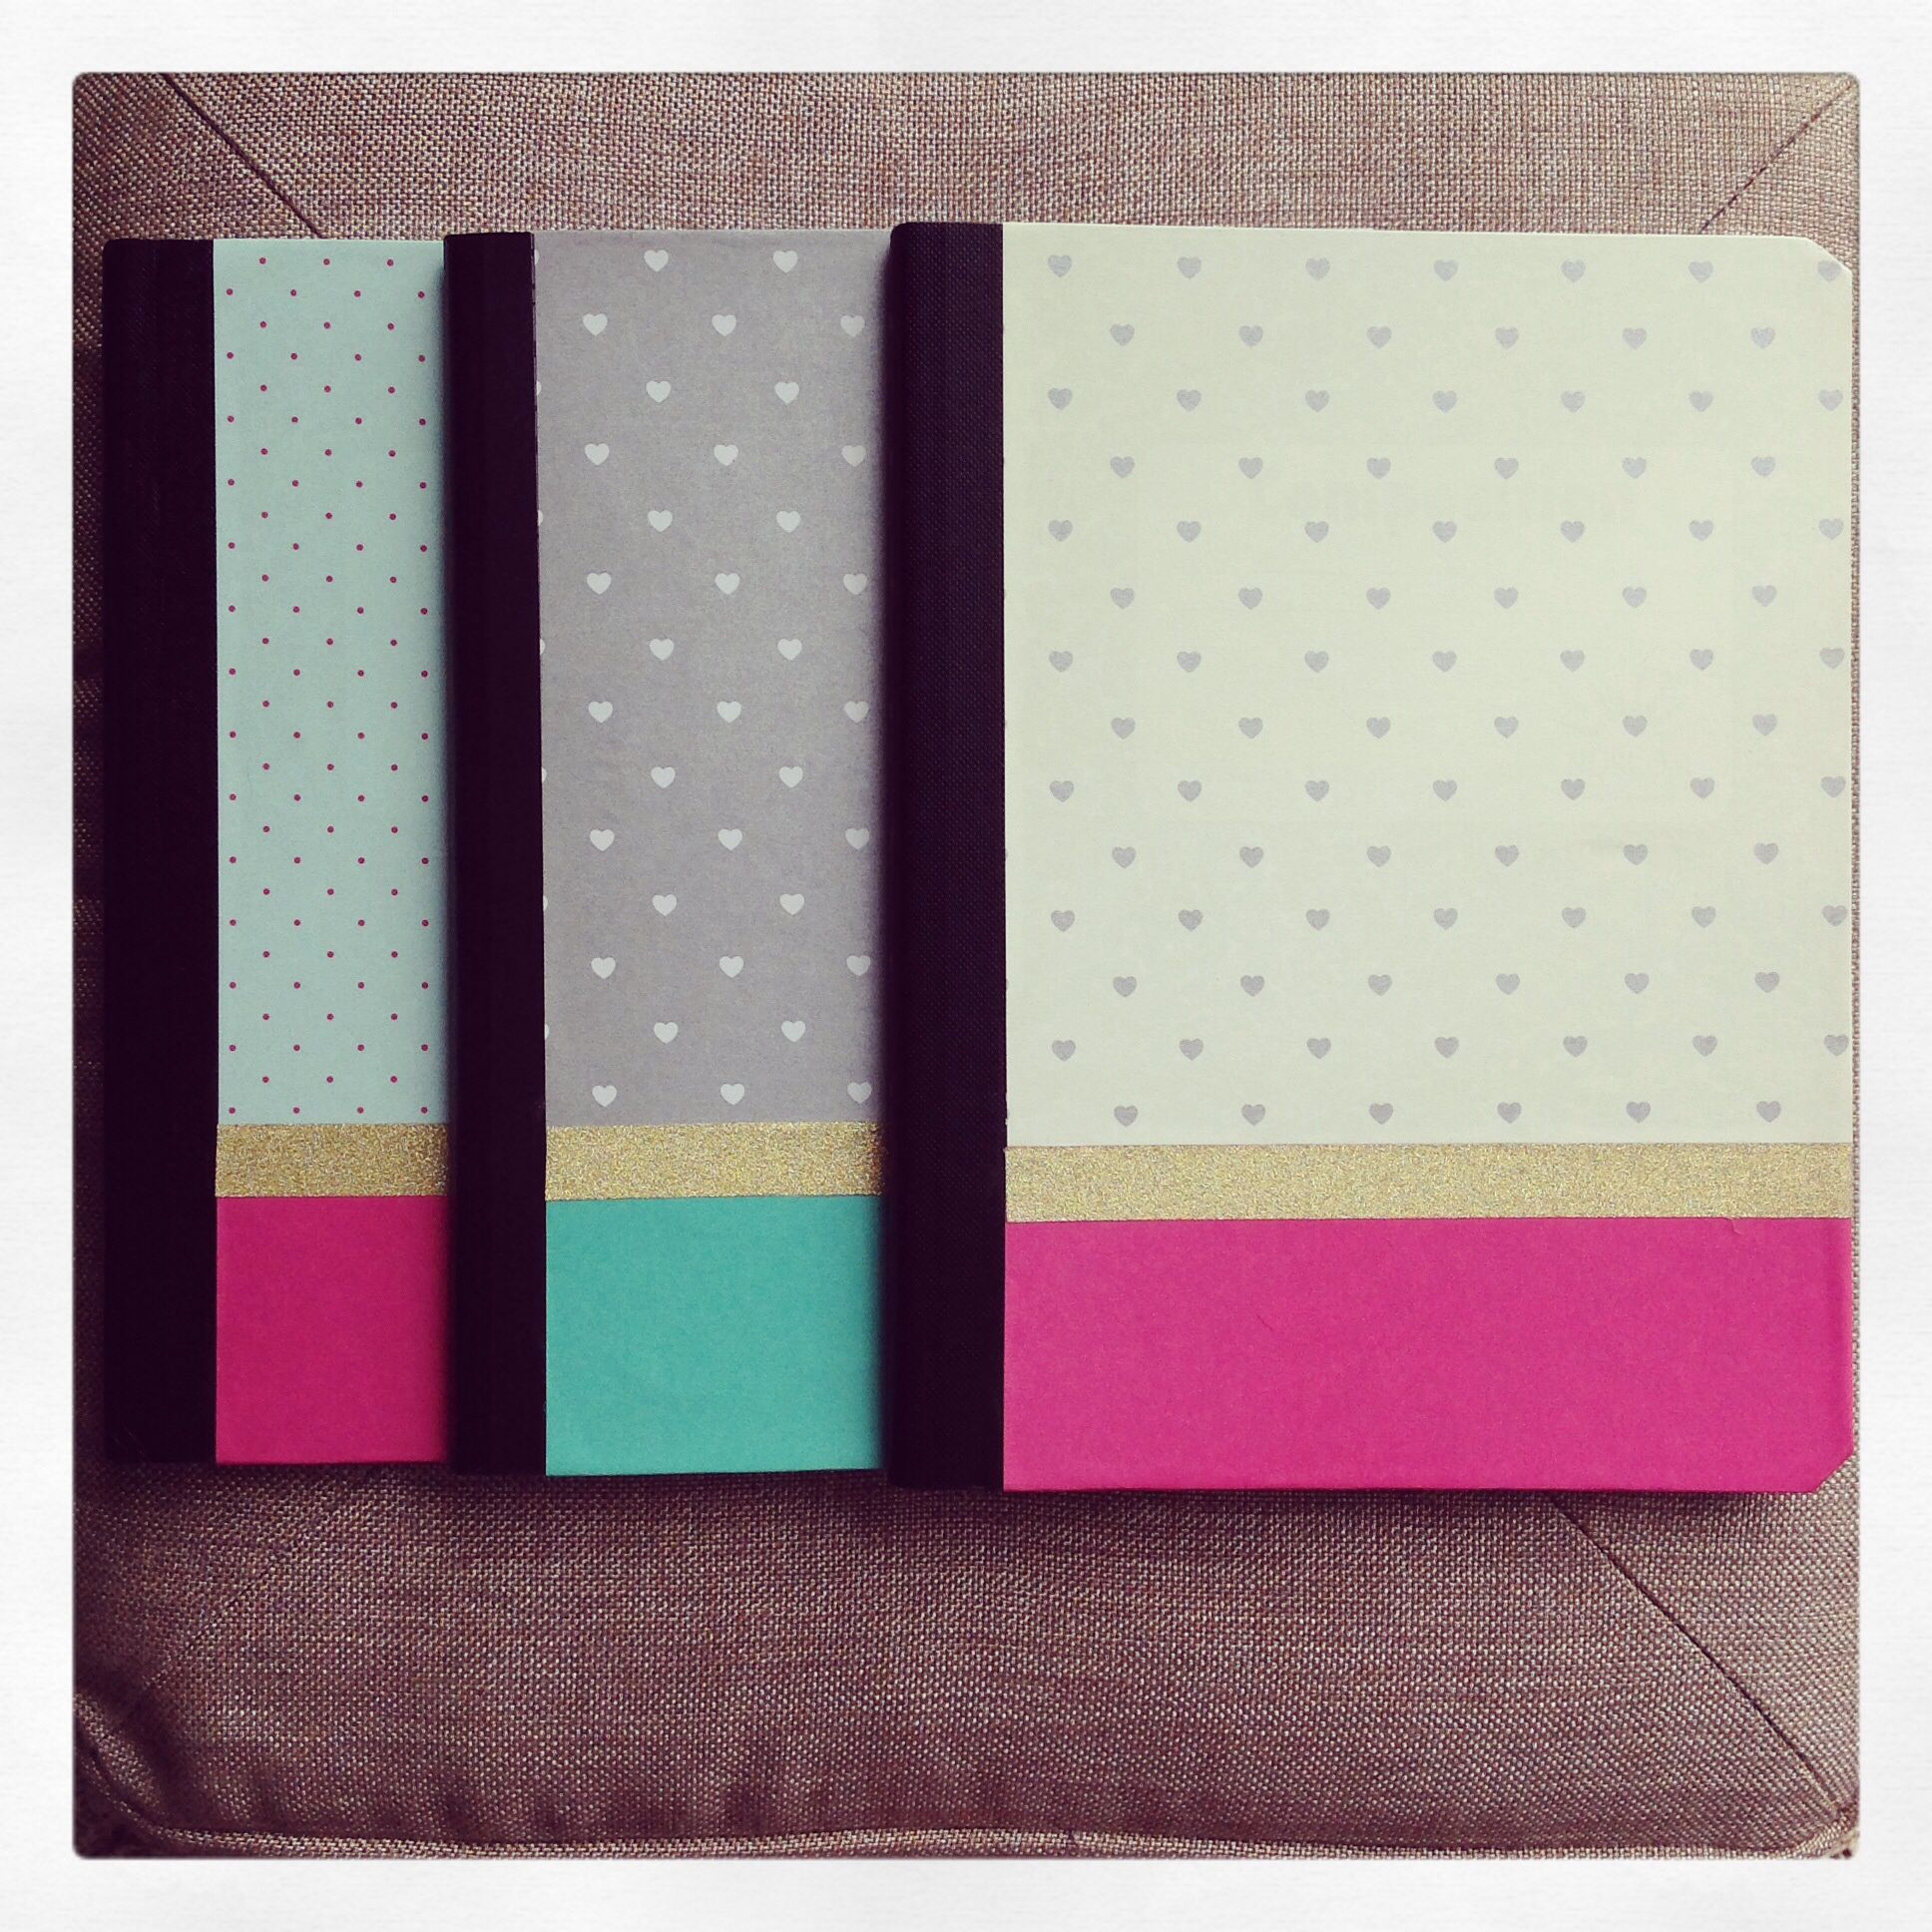 Paper Things Book Cover ~ Girly diy covered composition books using paper and wasi